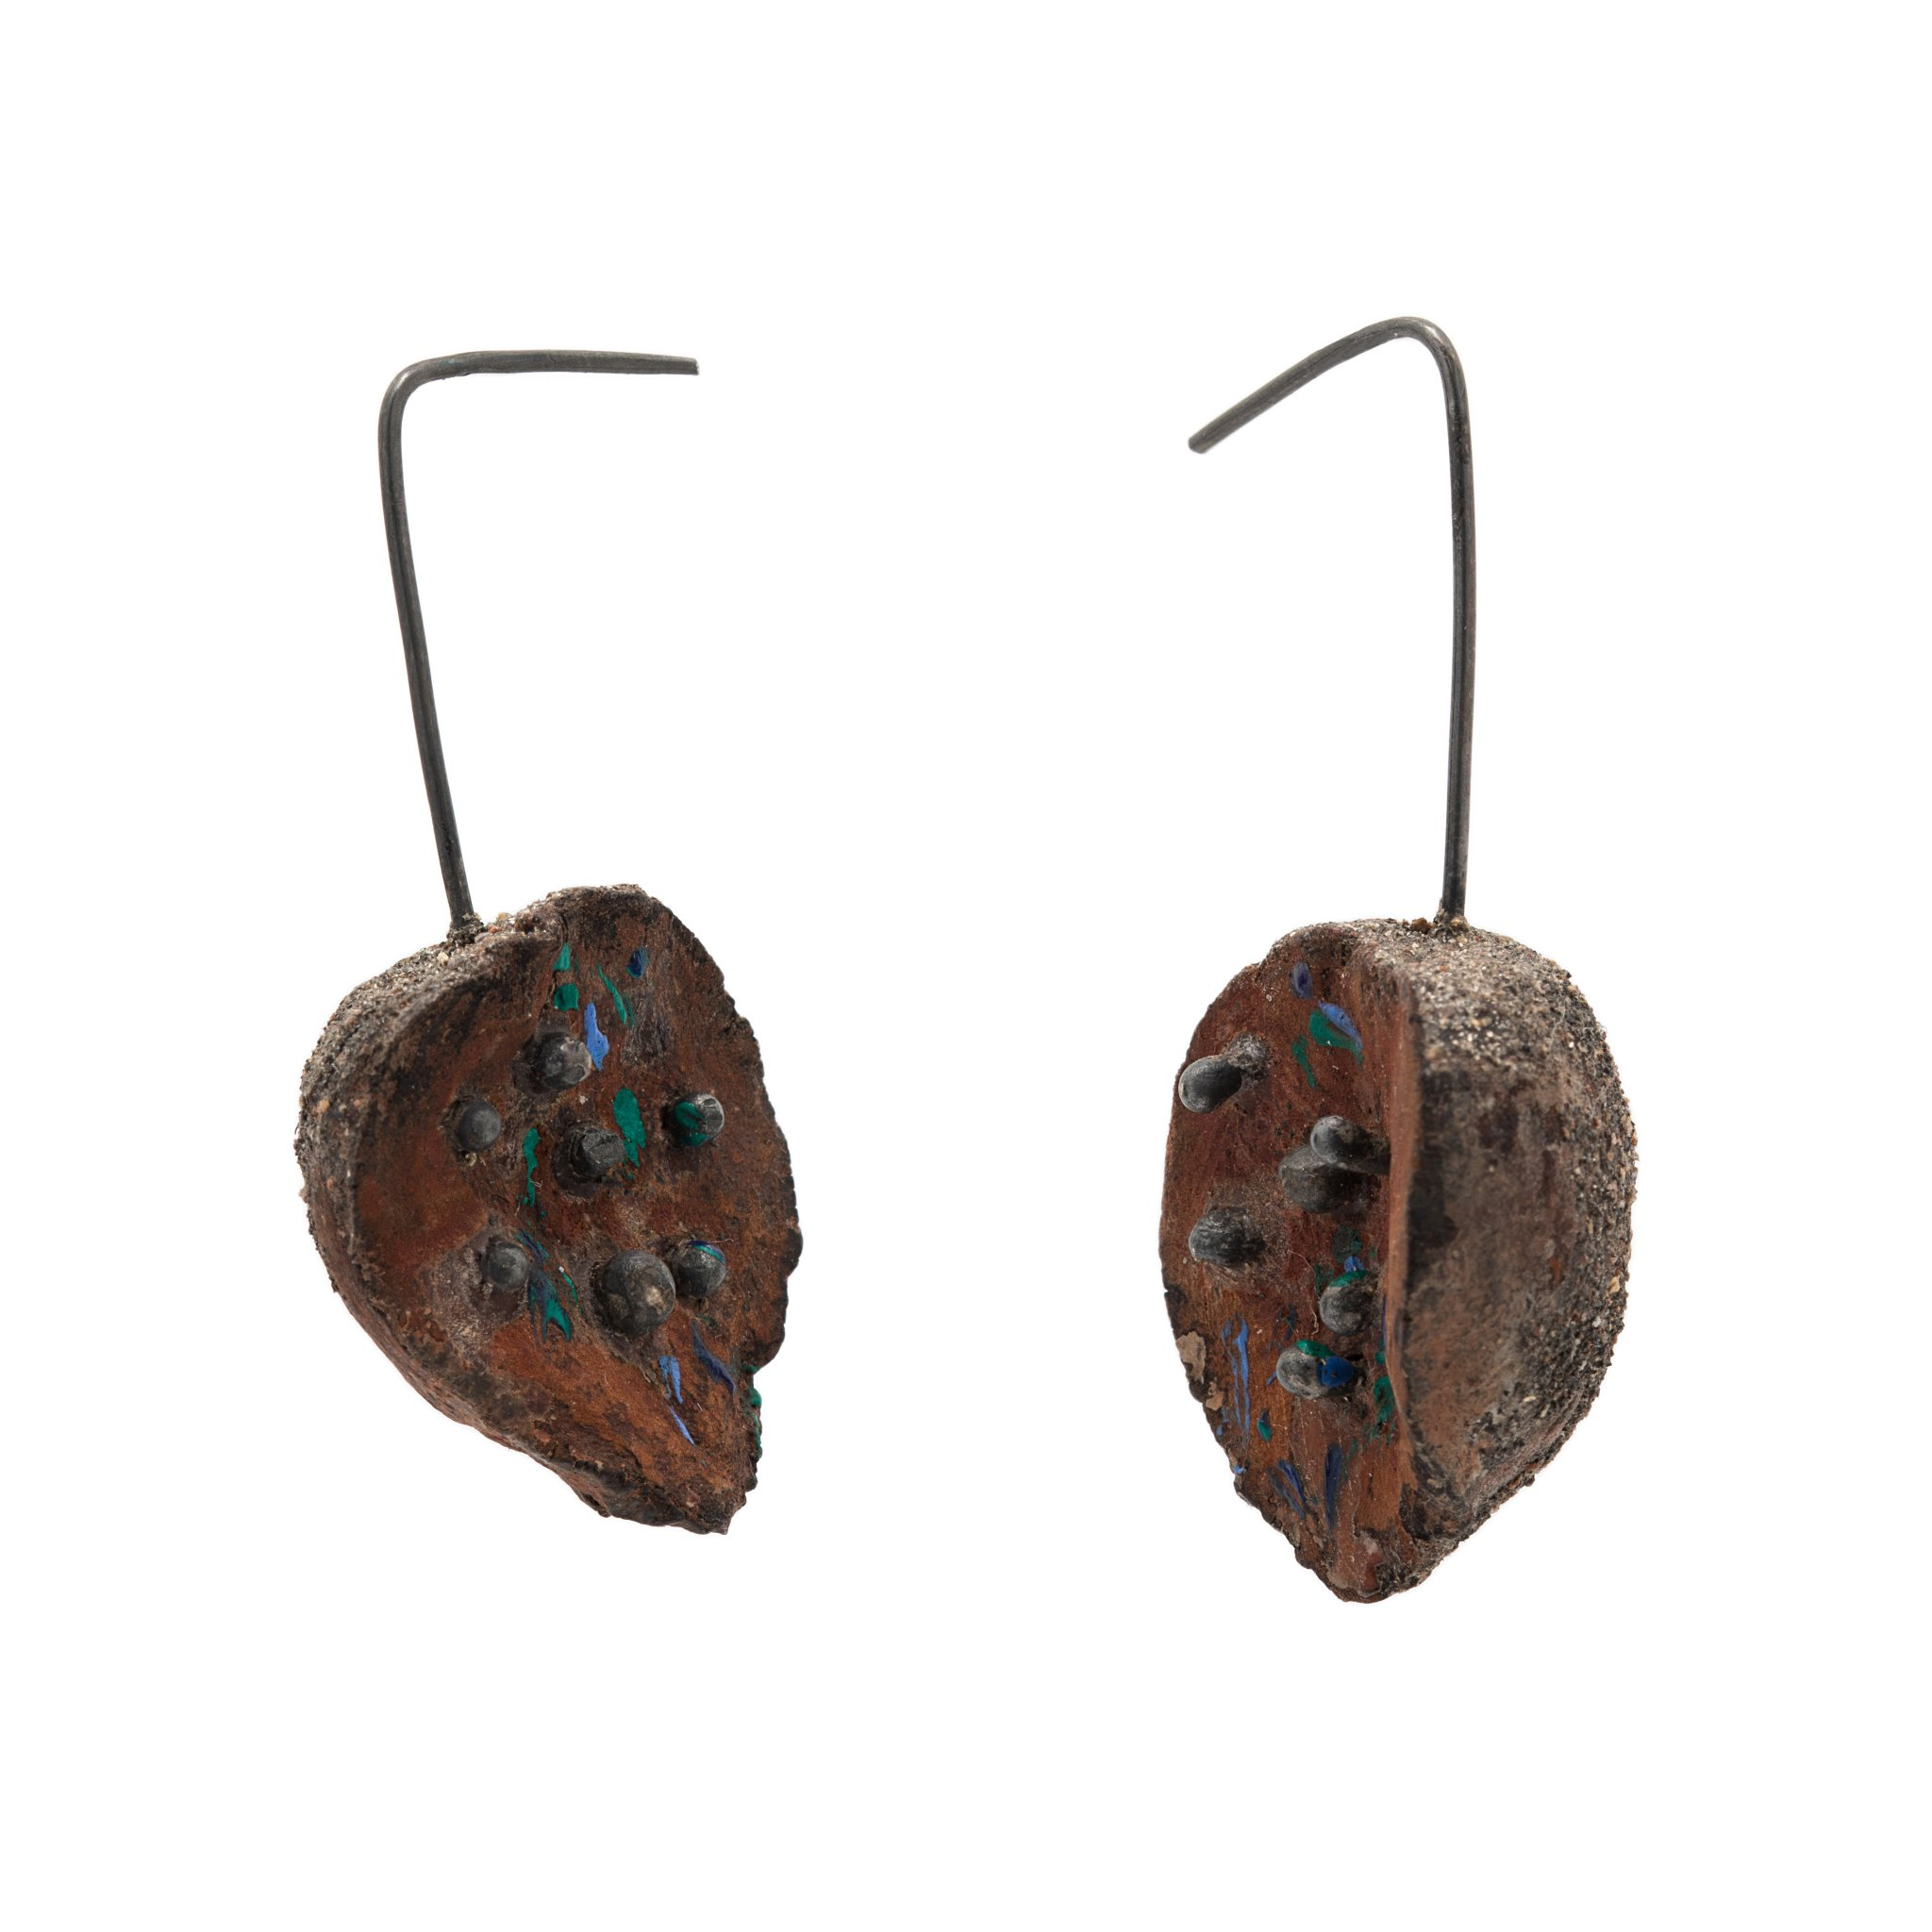 avocado-earrings-no-3-1